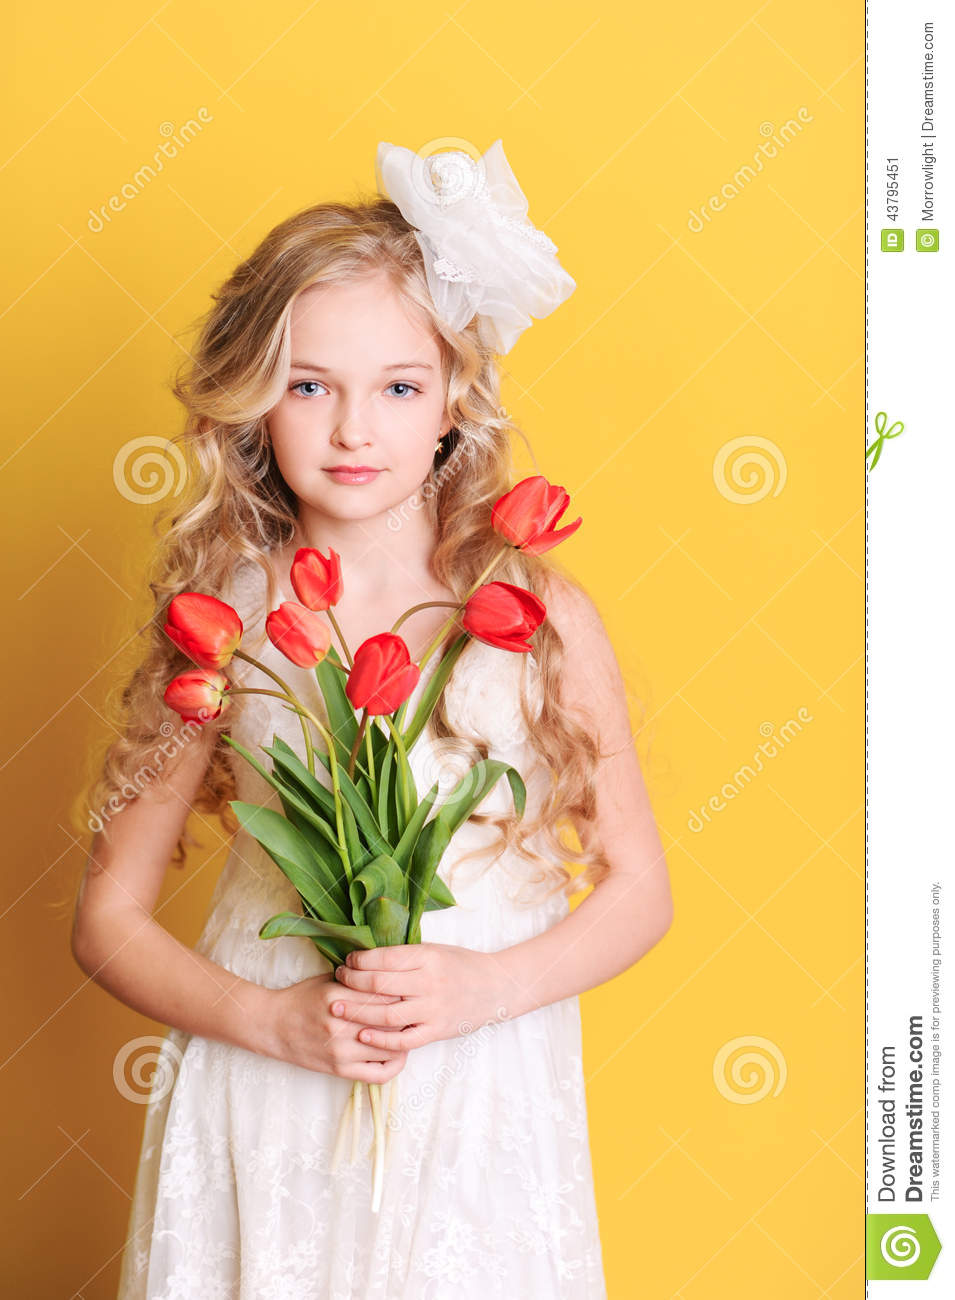 Smiling Kid Girl Holding Flowers On Yellow Stock Image ...